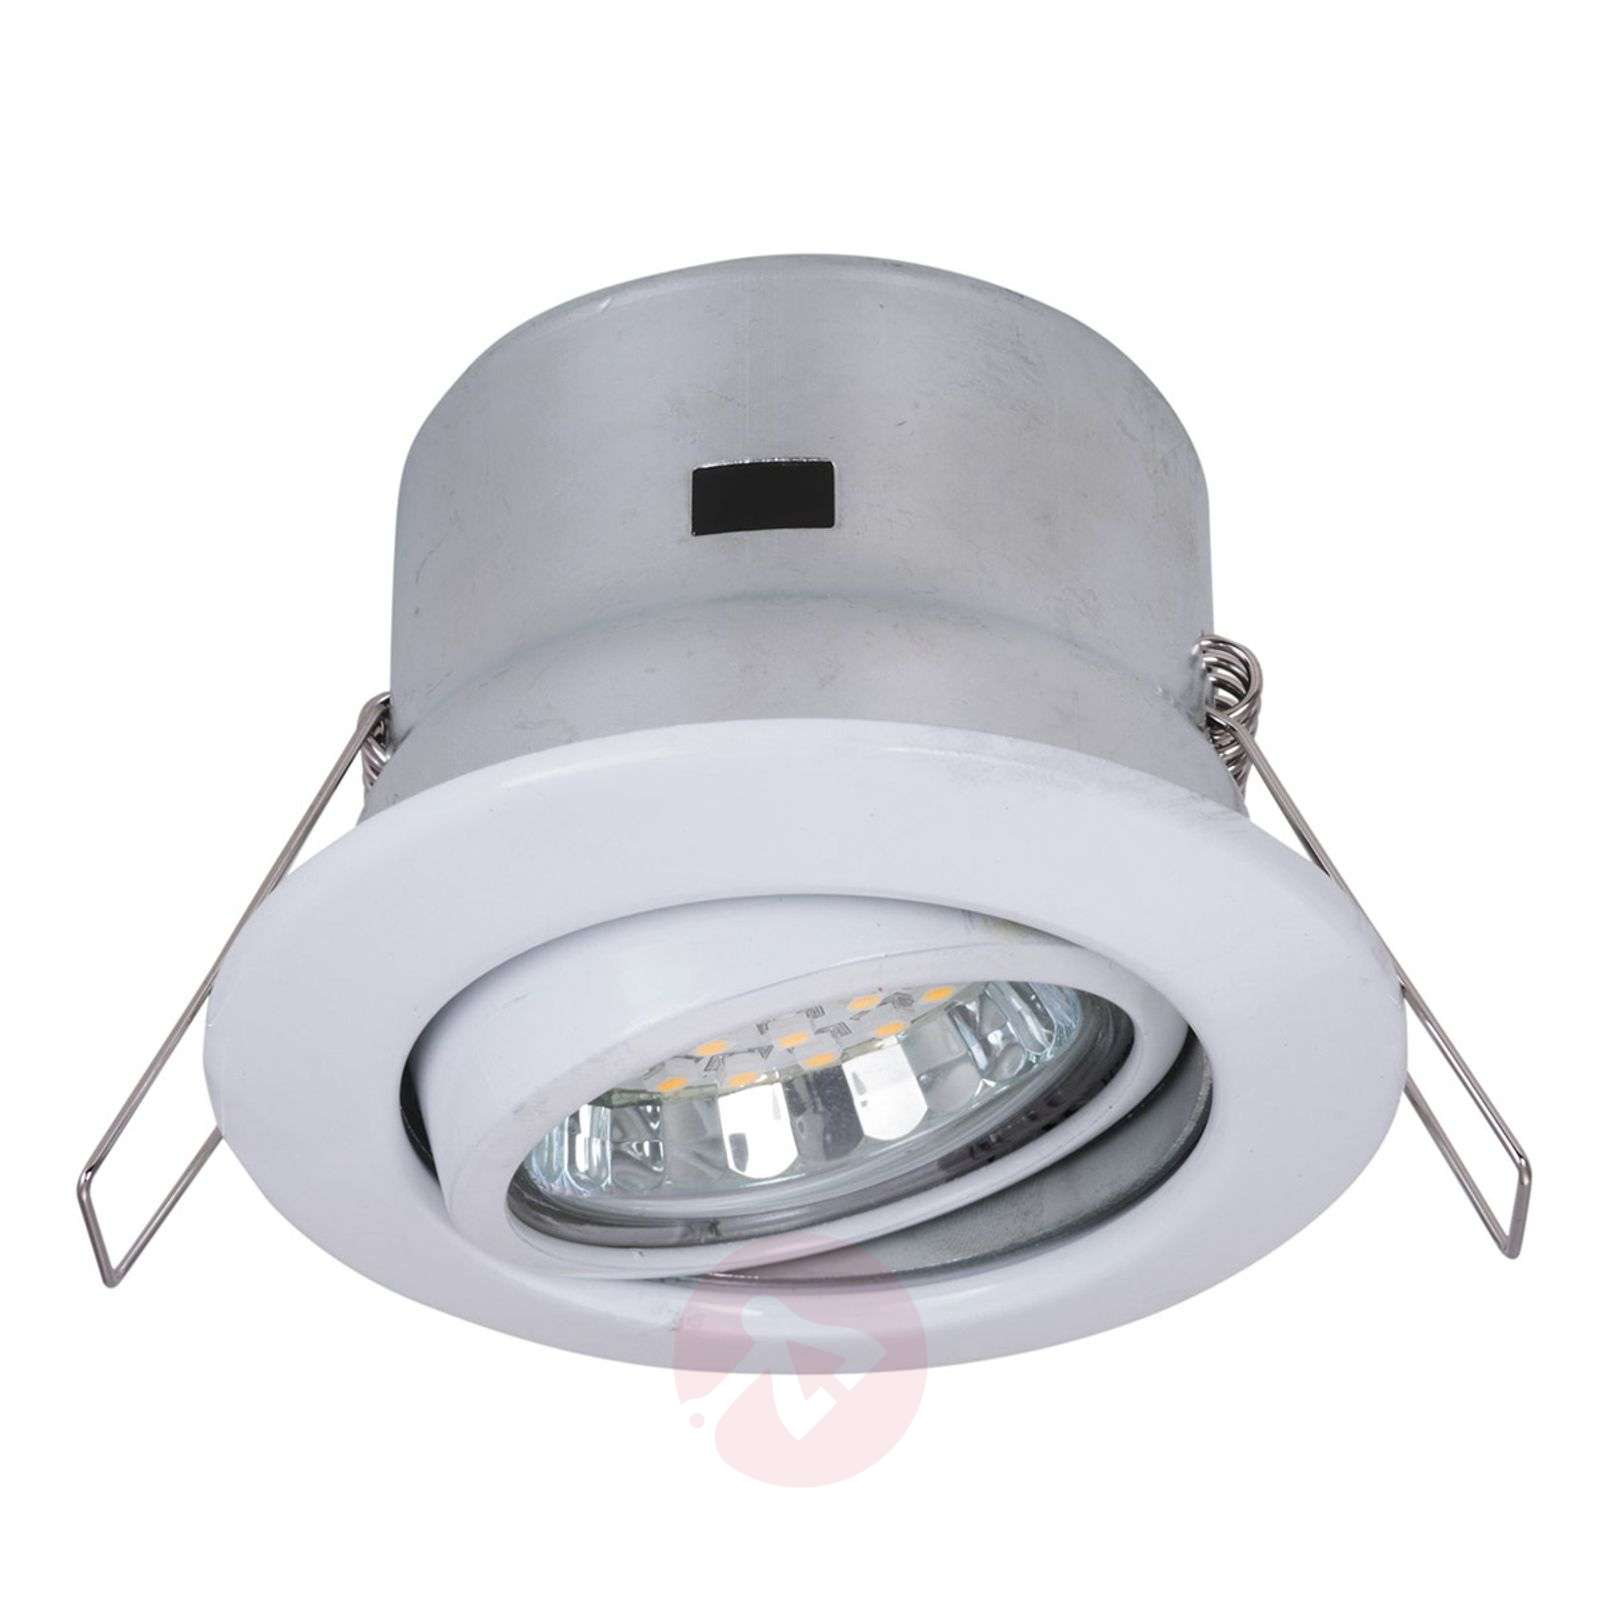 pivotable and rotatable recessed light